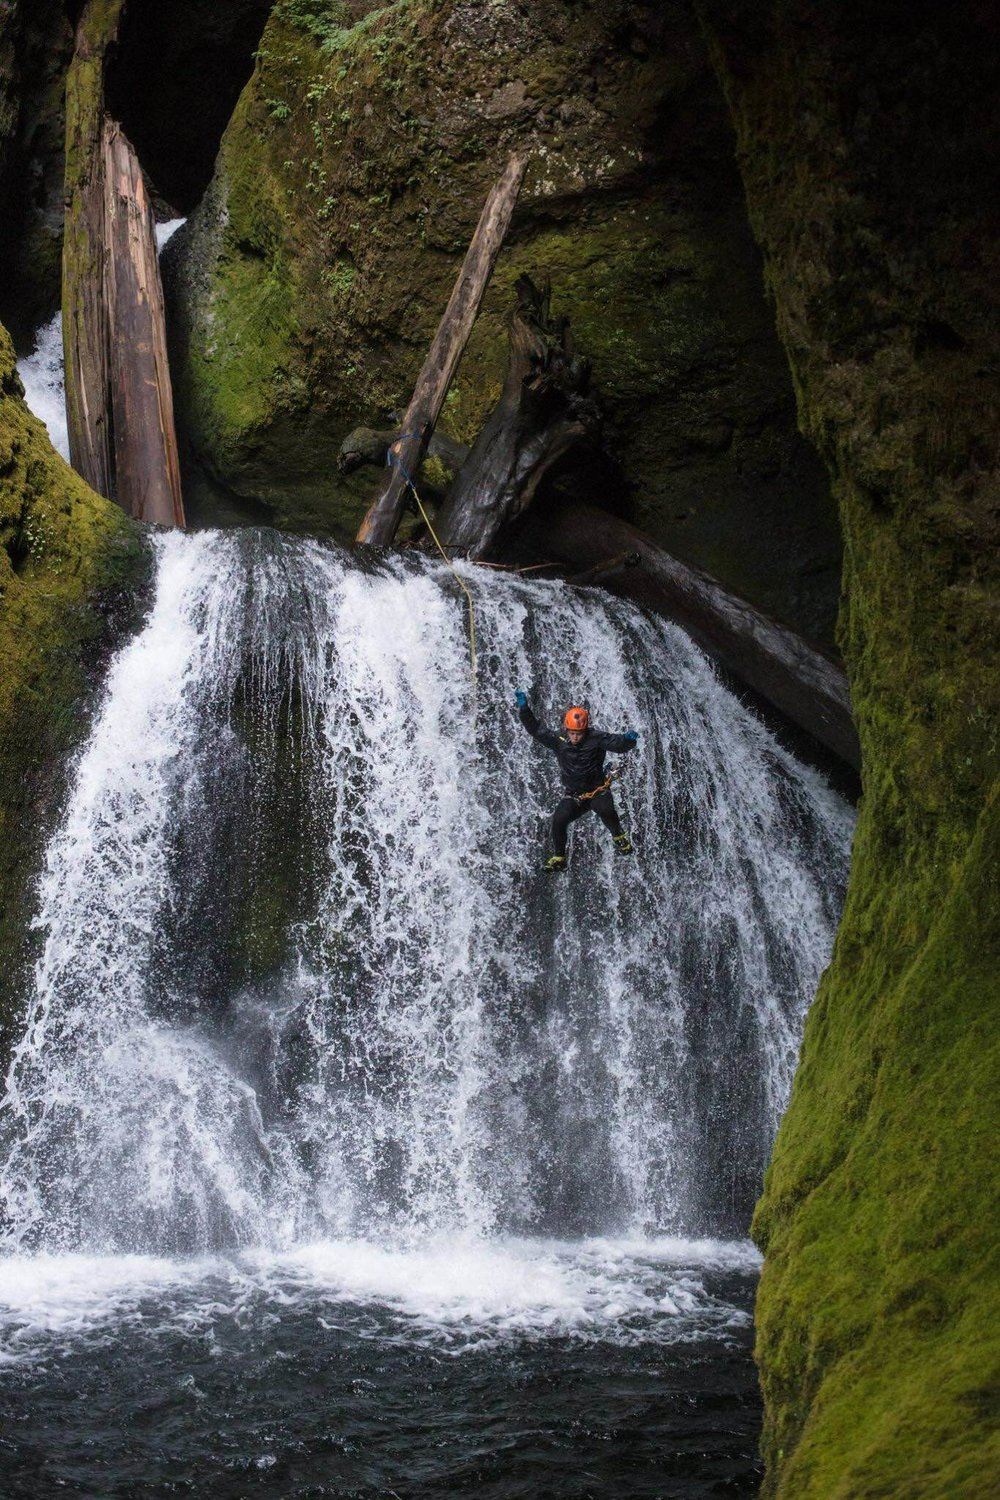 Taking a leap into a pool on a canyon trip in Southwest Washington. Photo by Jeff Bartlett.